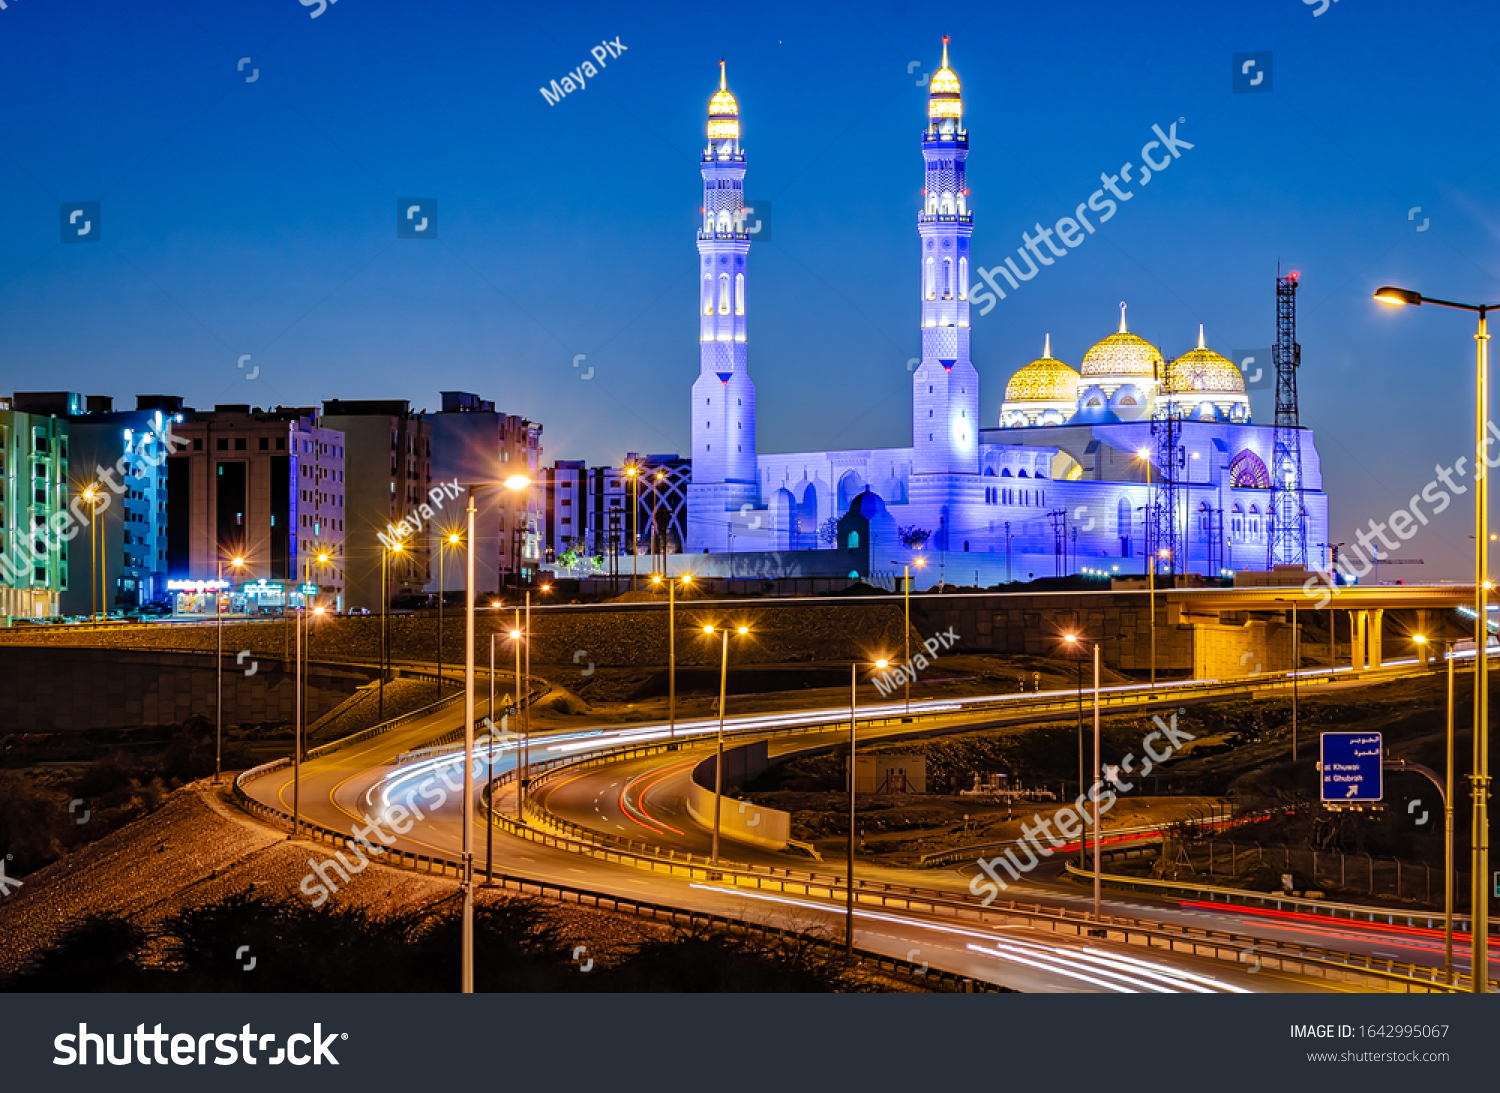 Muscat/Oman - Jan 17, 2020: Motion Trails in front of the beautifully lit  Mohamed Al Ameen Mosque in Muscat, Oman in the evening.